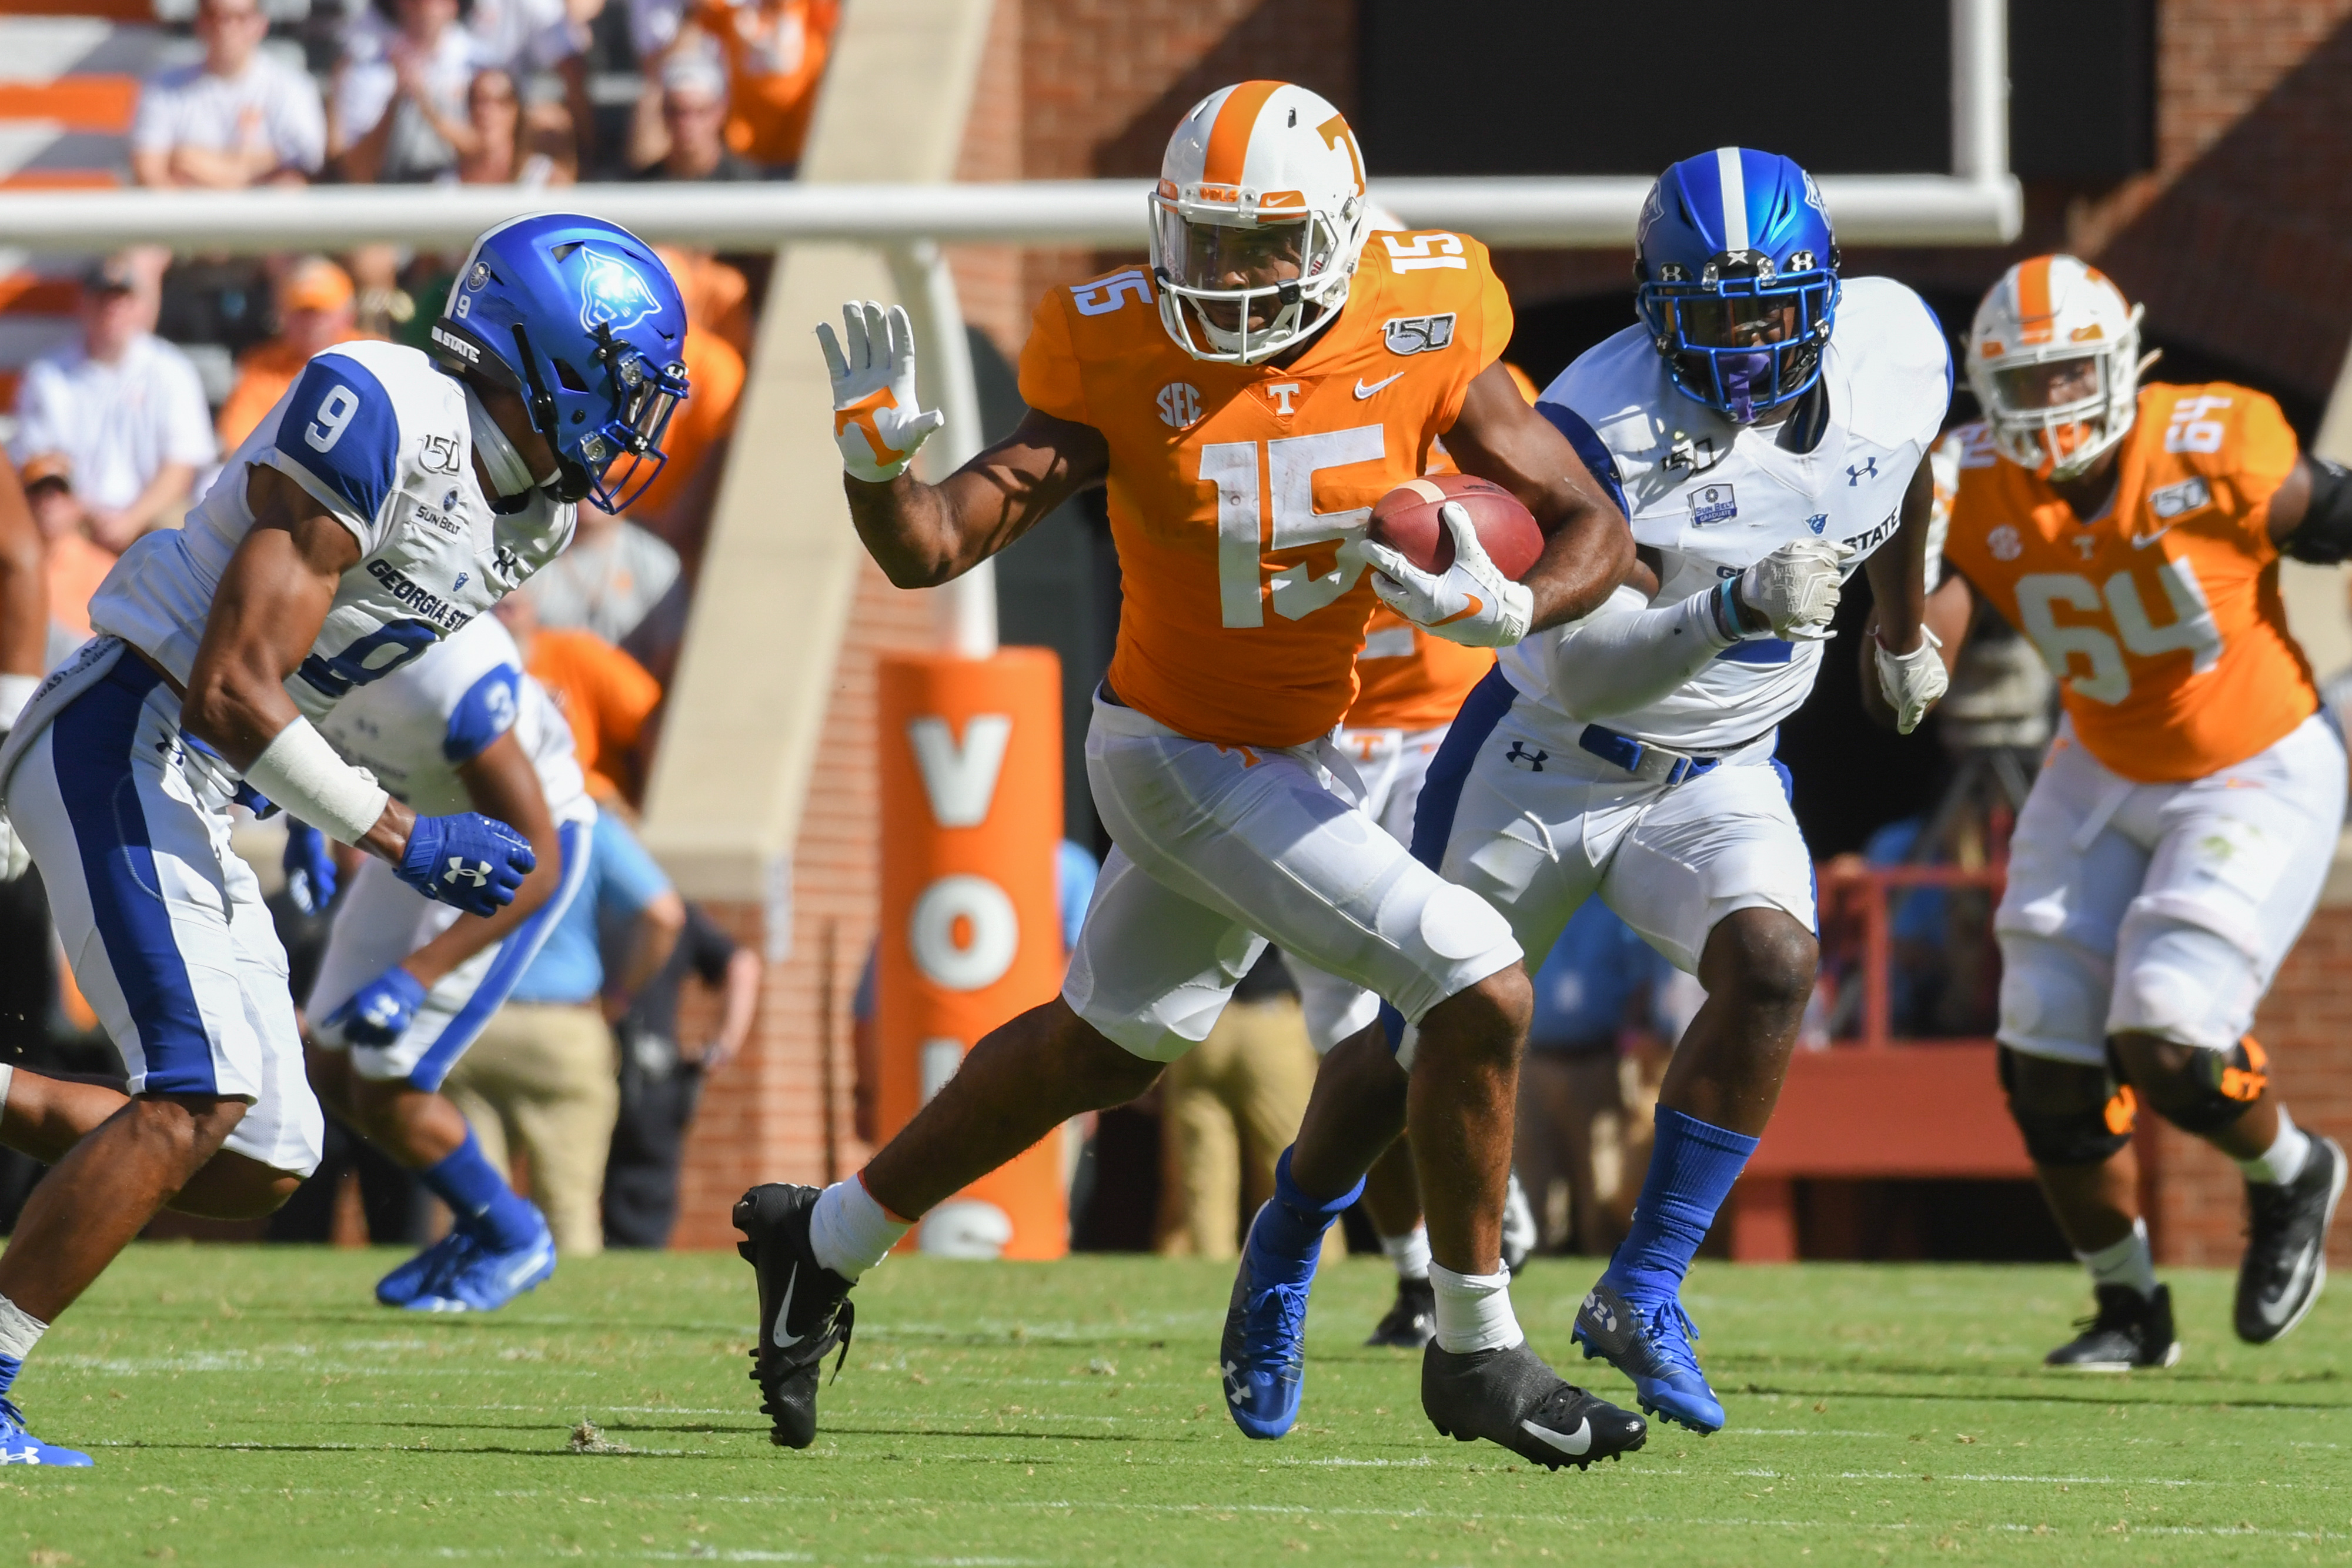 Rocky Top Talk, a Tennessee Volunteers community